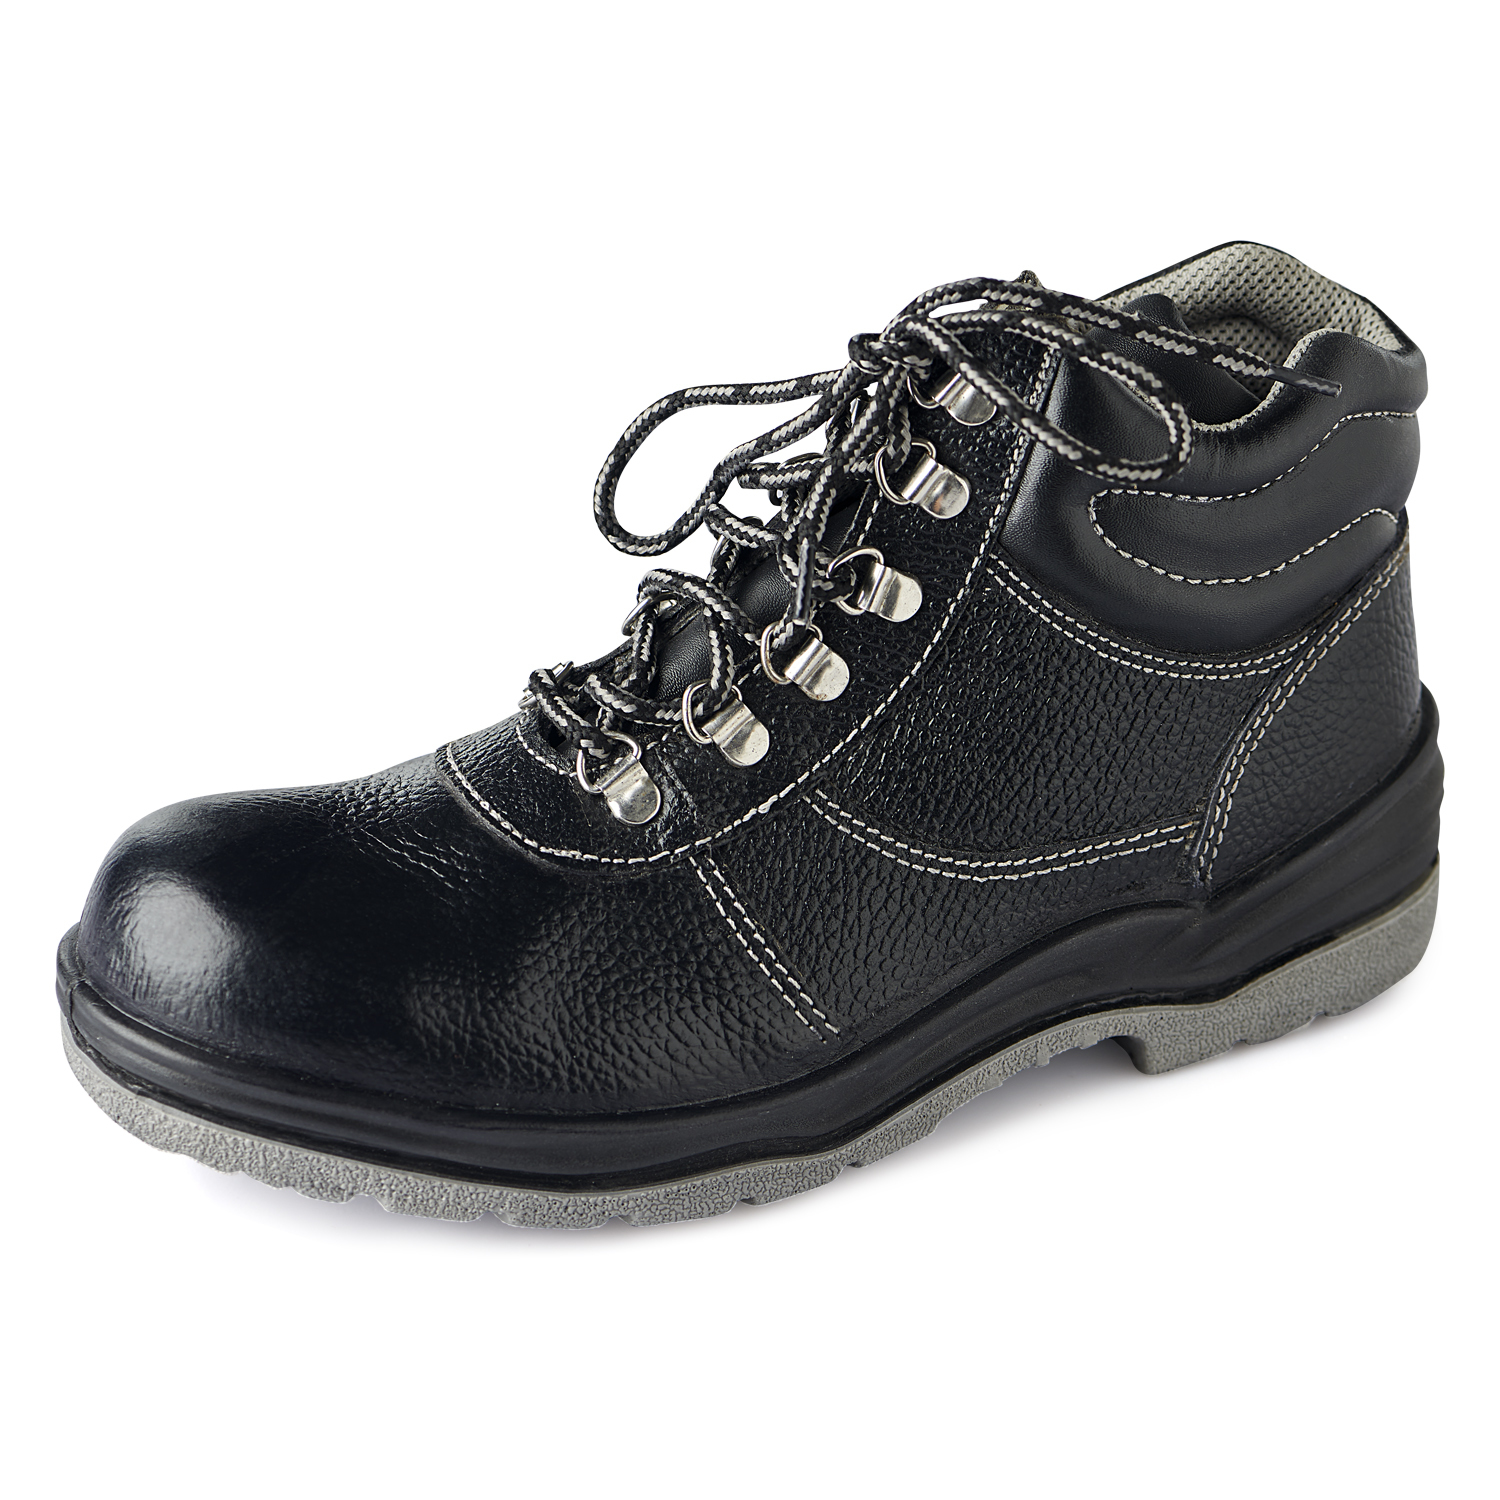 POLO ST PU Safety Shoes